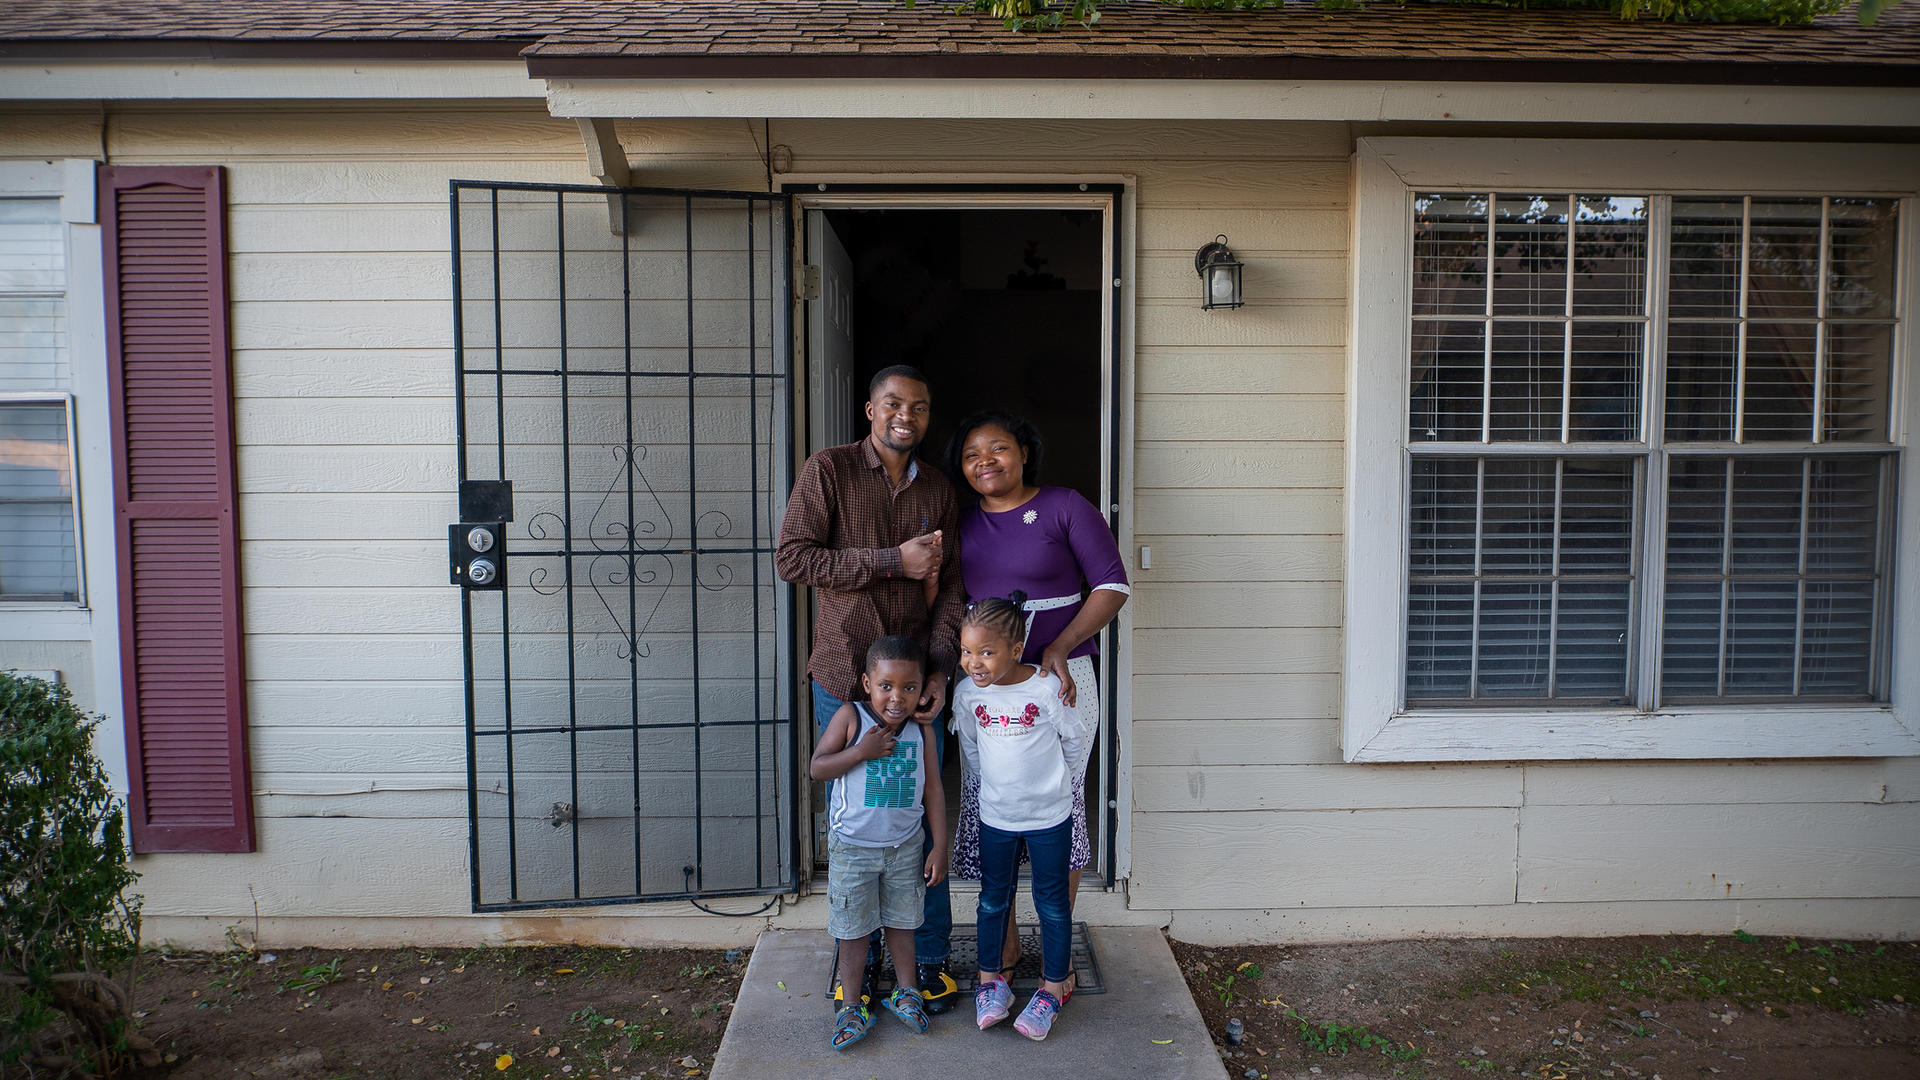 Congolese refugee family outside home in Arizona